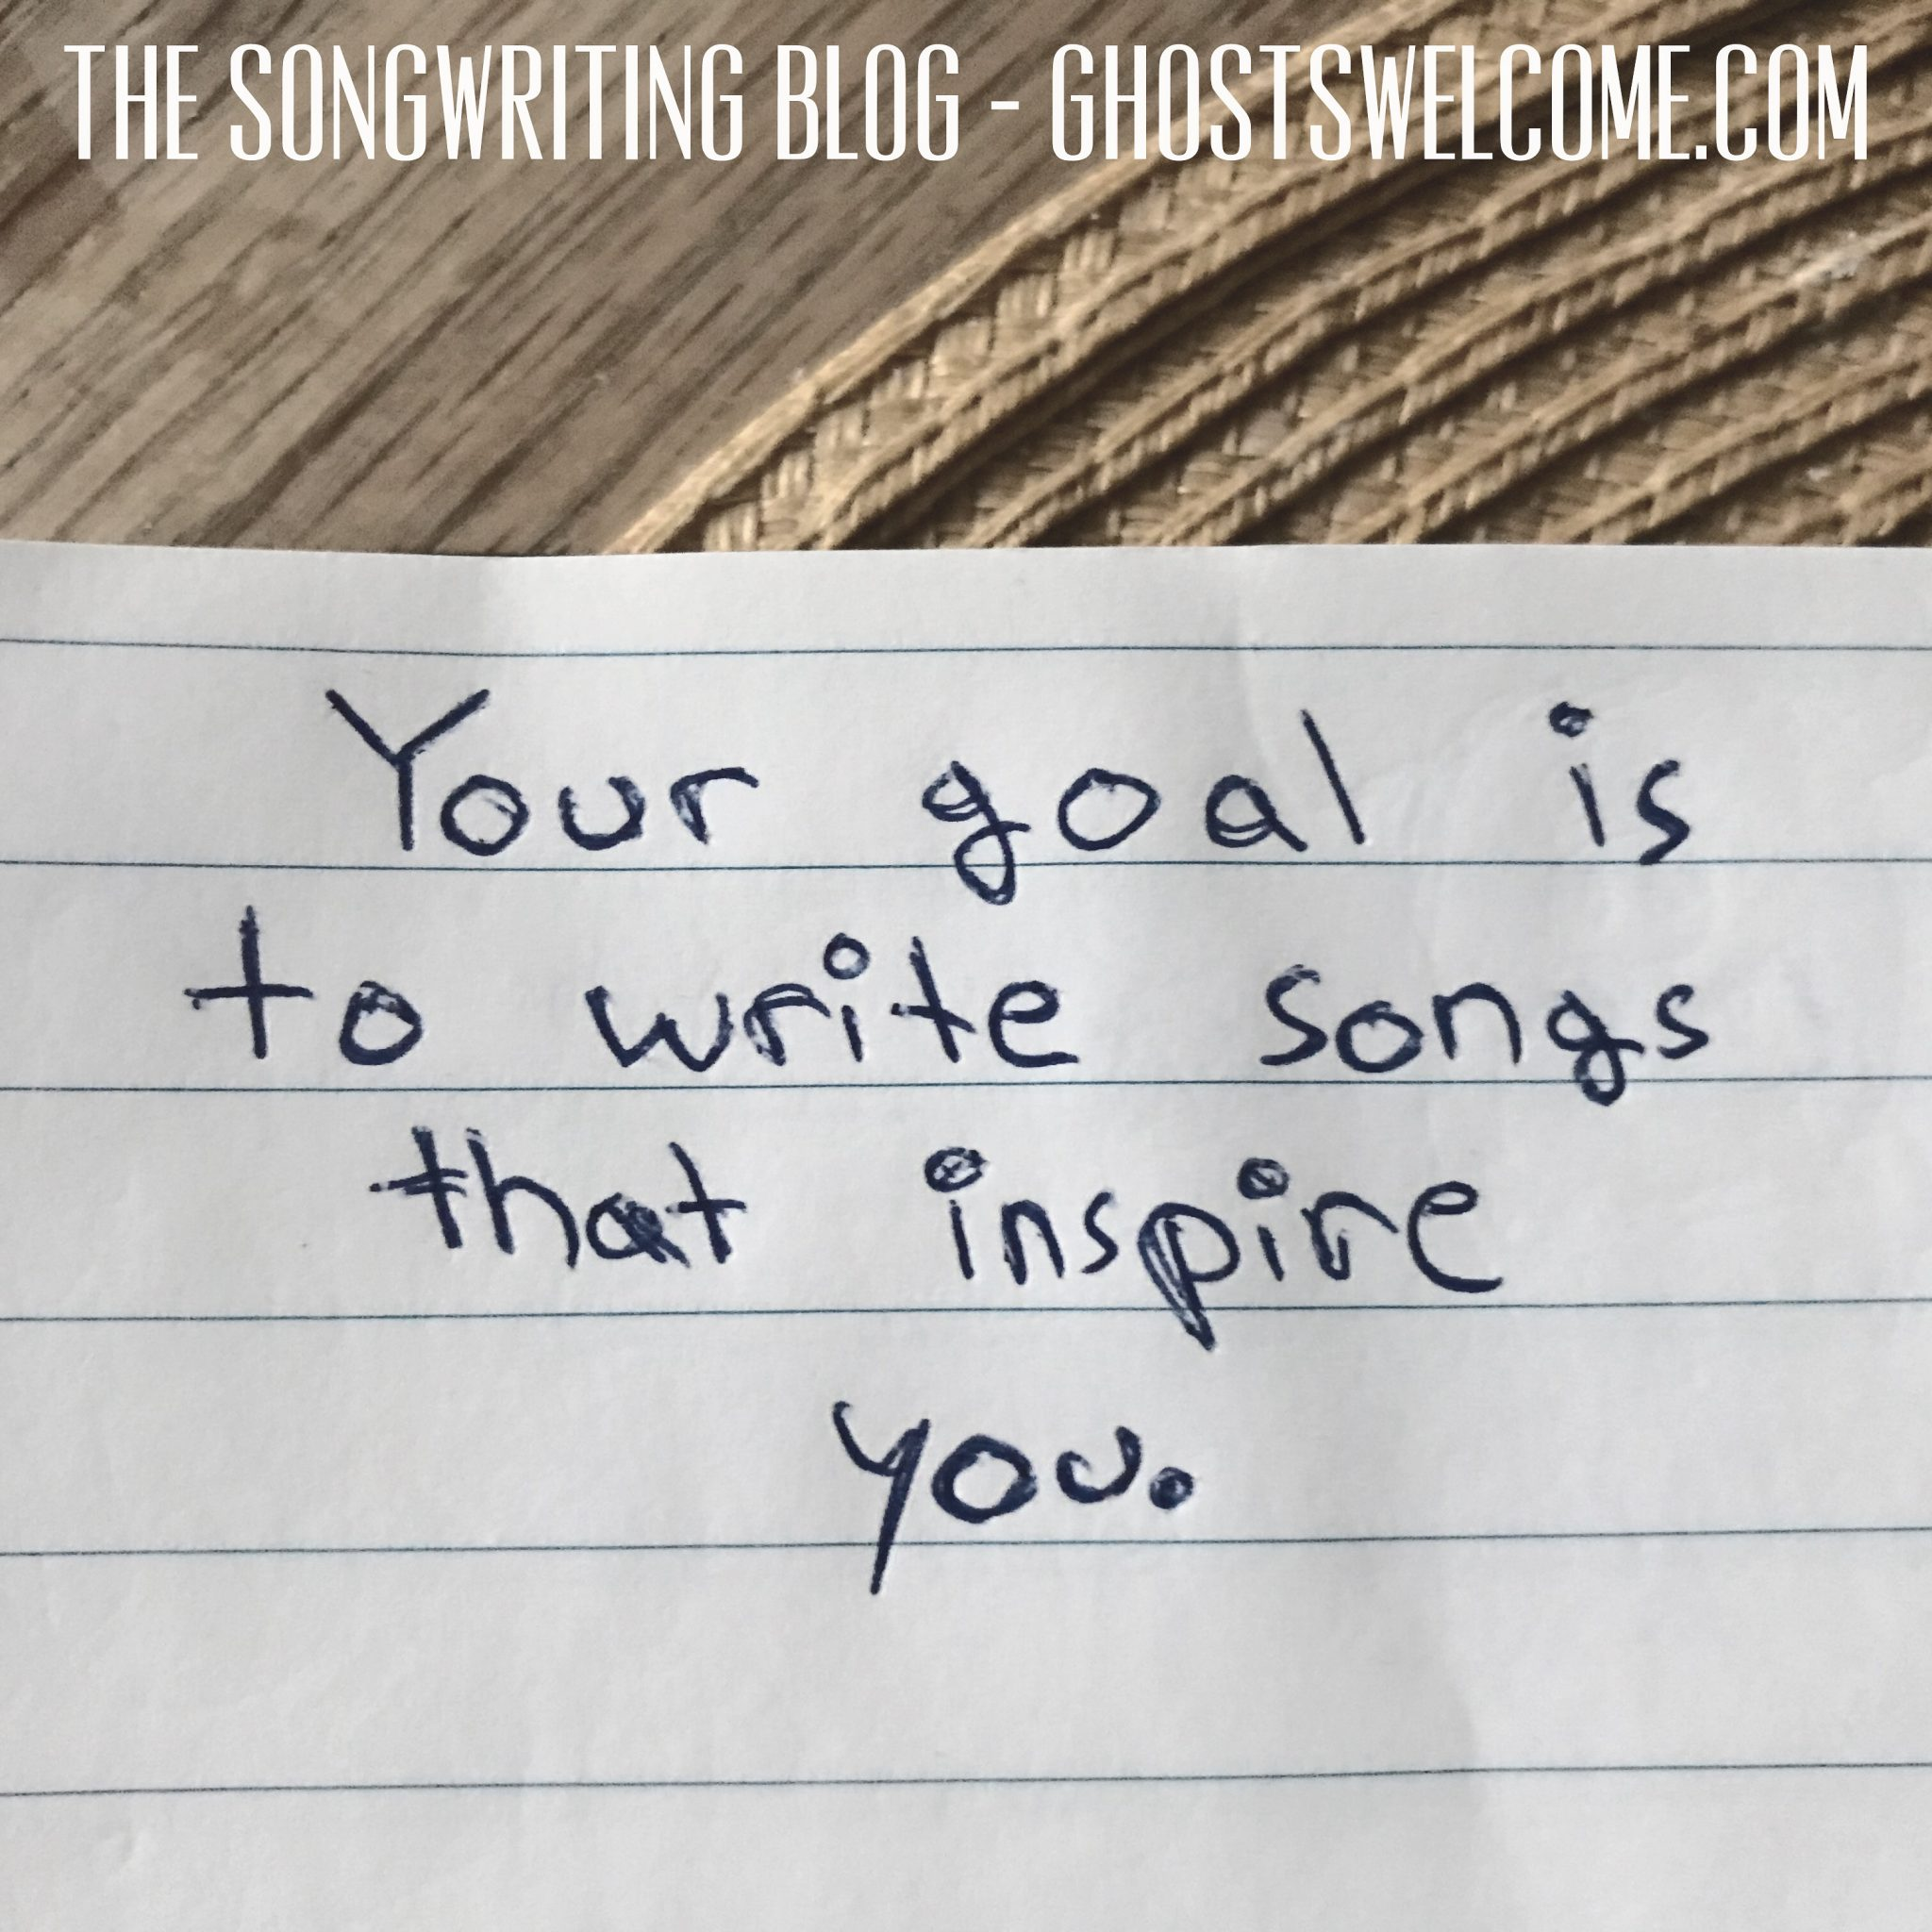 Your goal is to write songs that inspire you